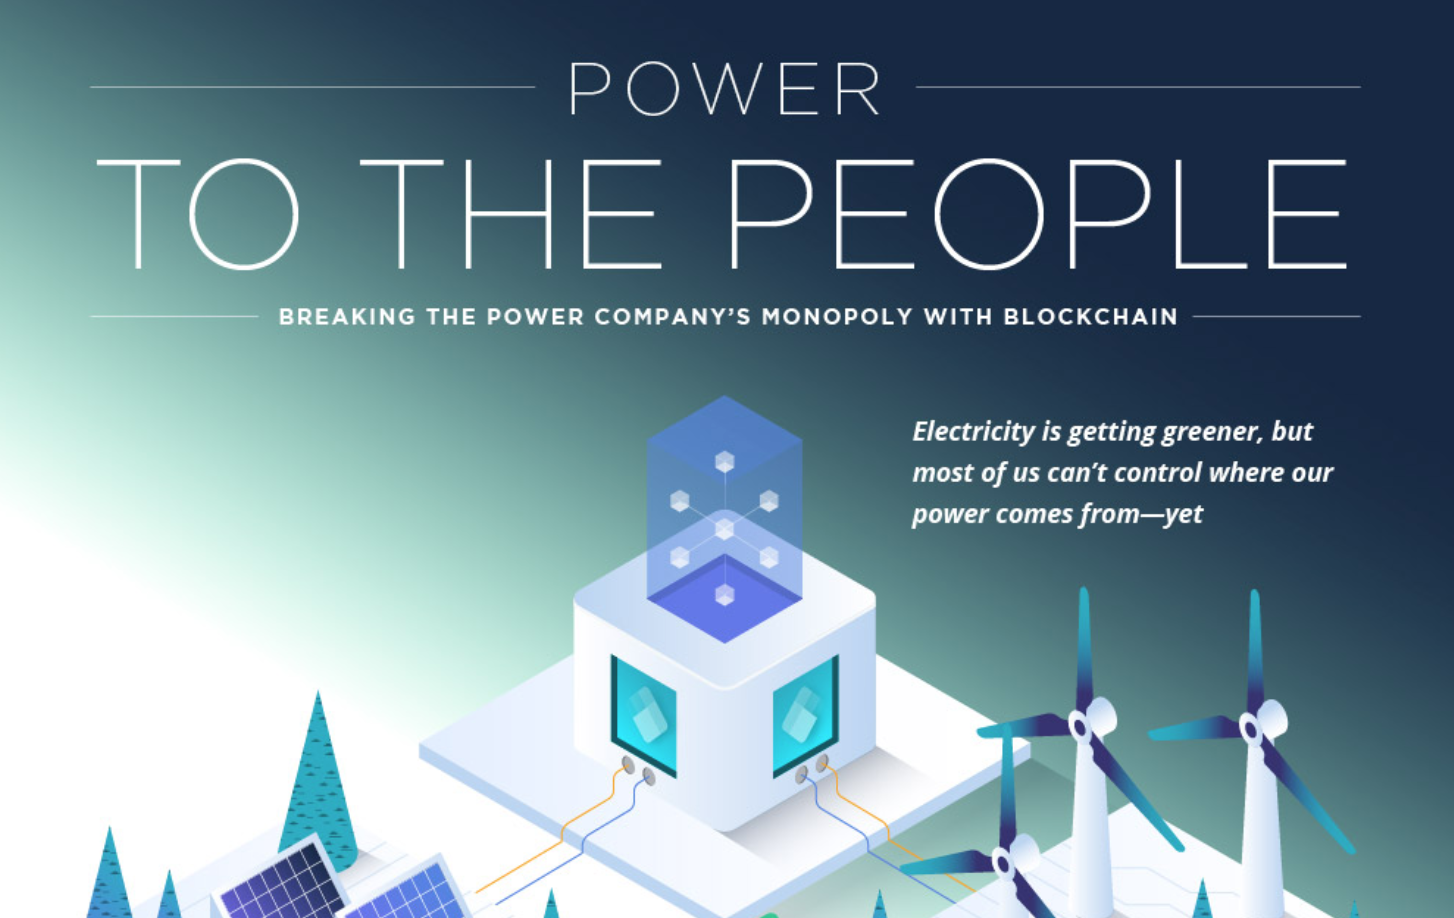 /power-to-the-people-how-energy-works-on-the-blockchain-fdb65a77579c feature image